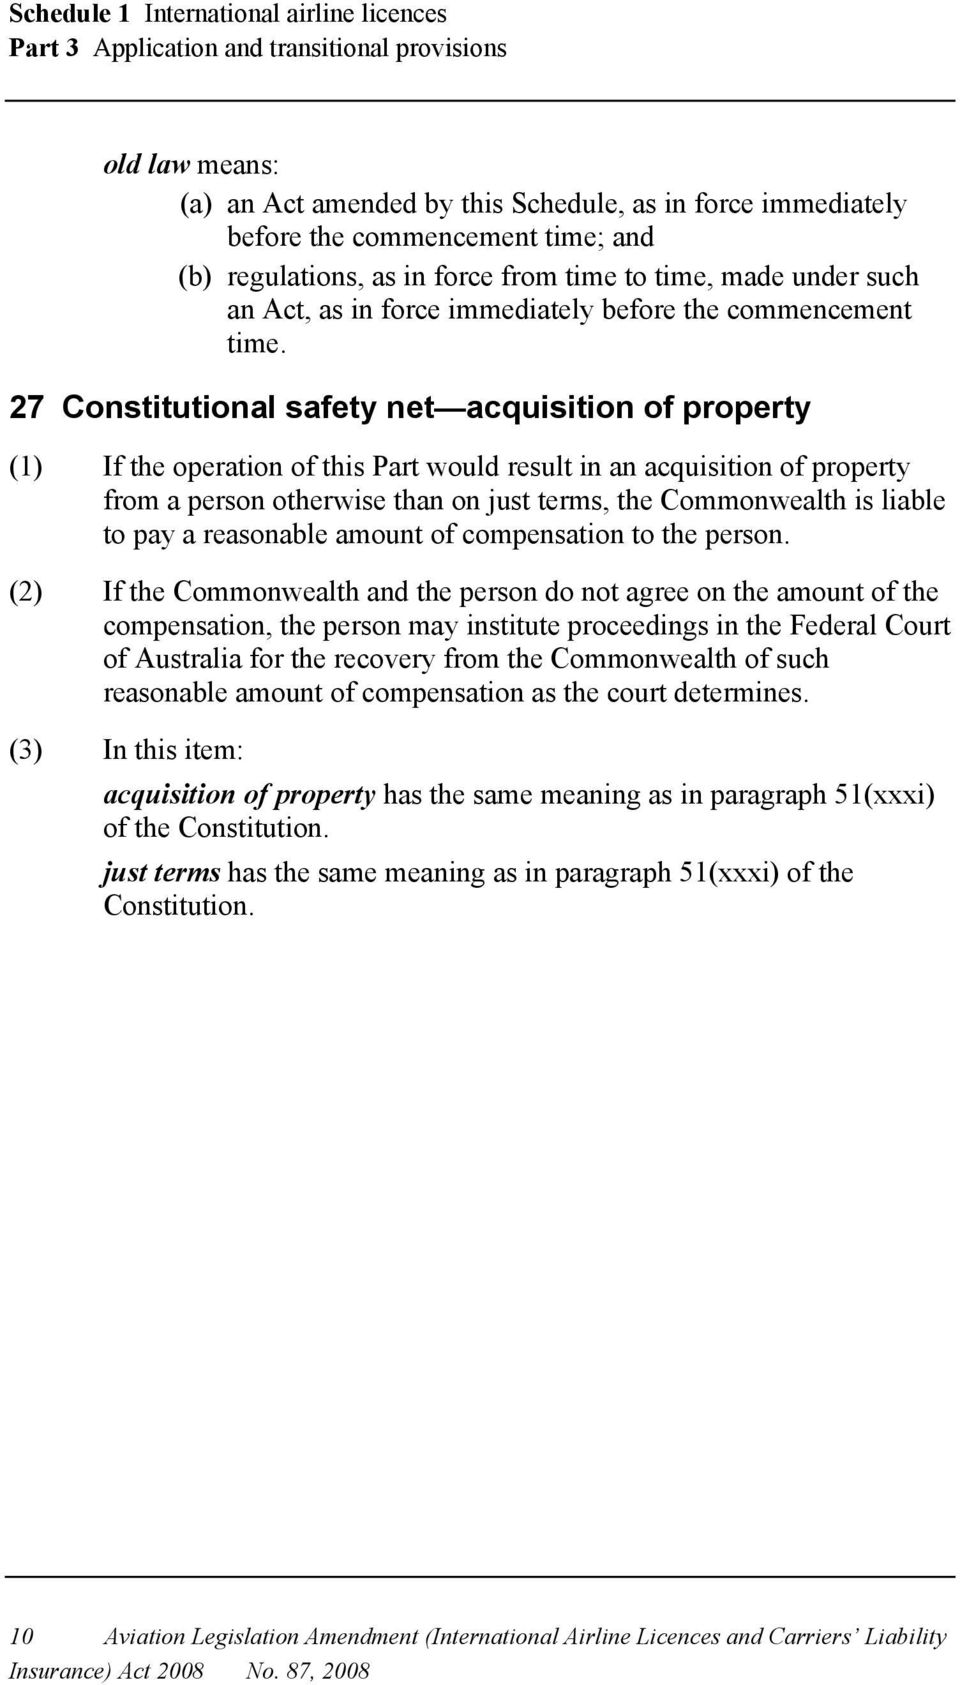 27 Constitutional safety net acquisition of property (1) If the operation of this Part would result in an acquisition of property from a person otherwise than on just terms, the Commonwealth is